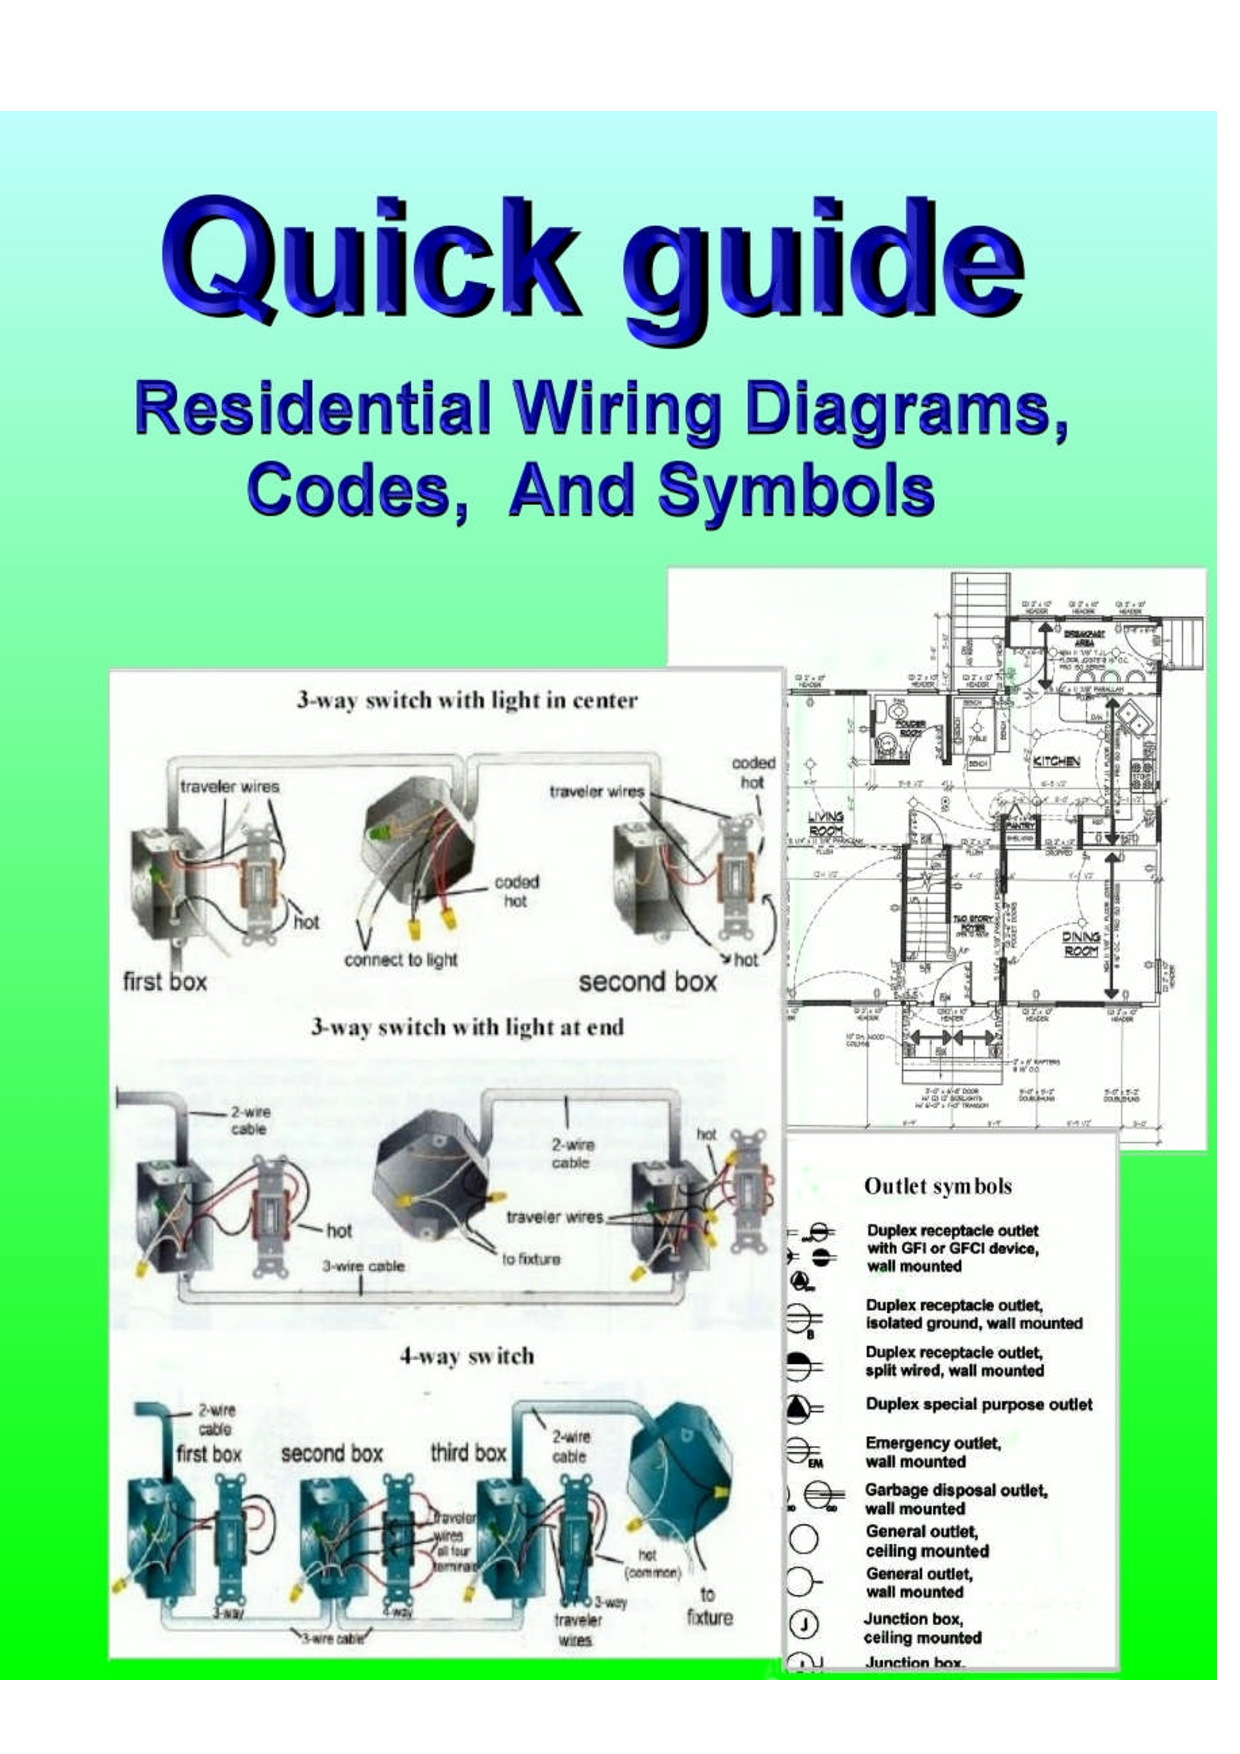 c3f403d8f667f3f3dbd14336f6c29d3e home electrical wiring diagrams pdf download legal documents 39 home electrical wiring diagrams pdf at soozxer.org